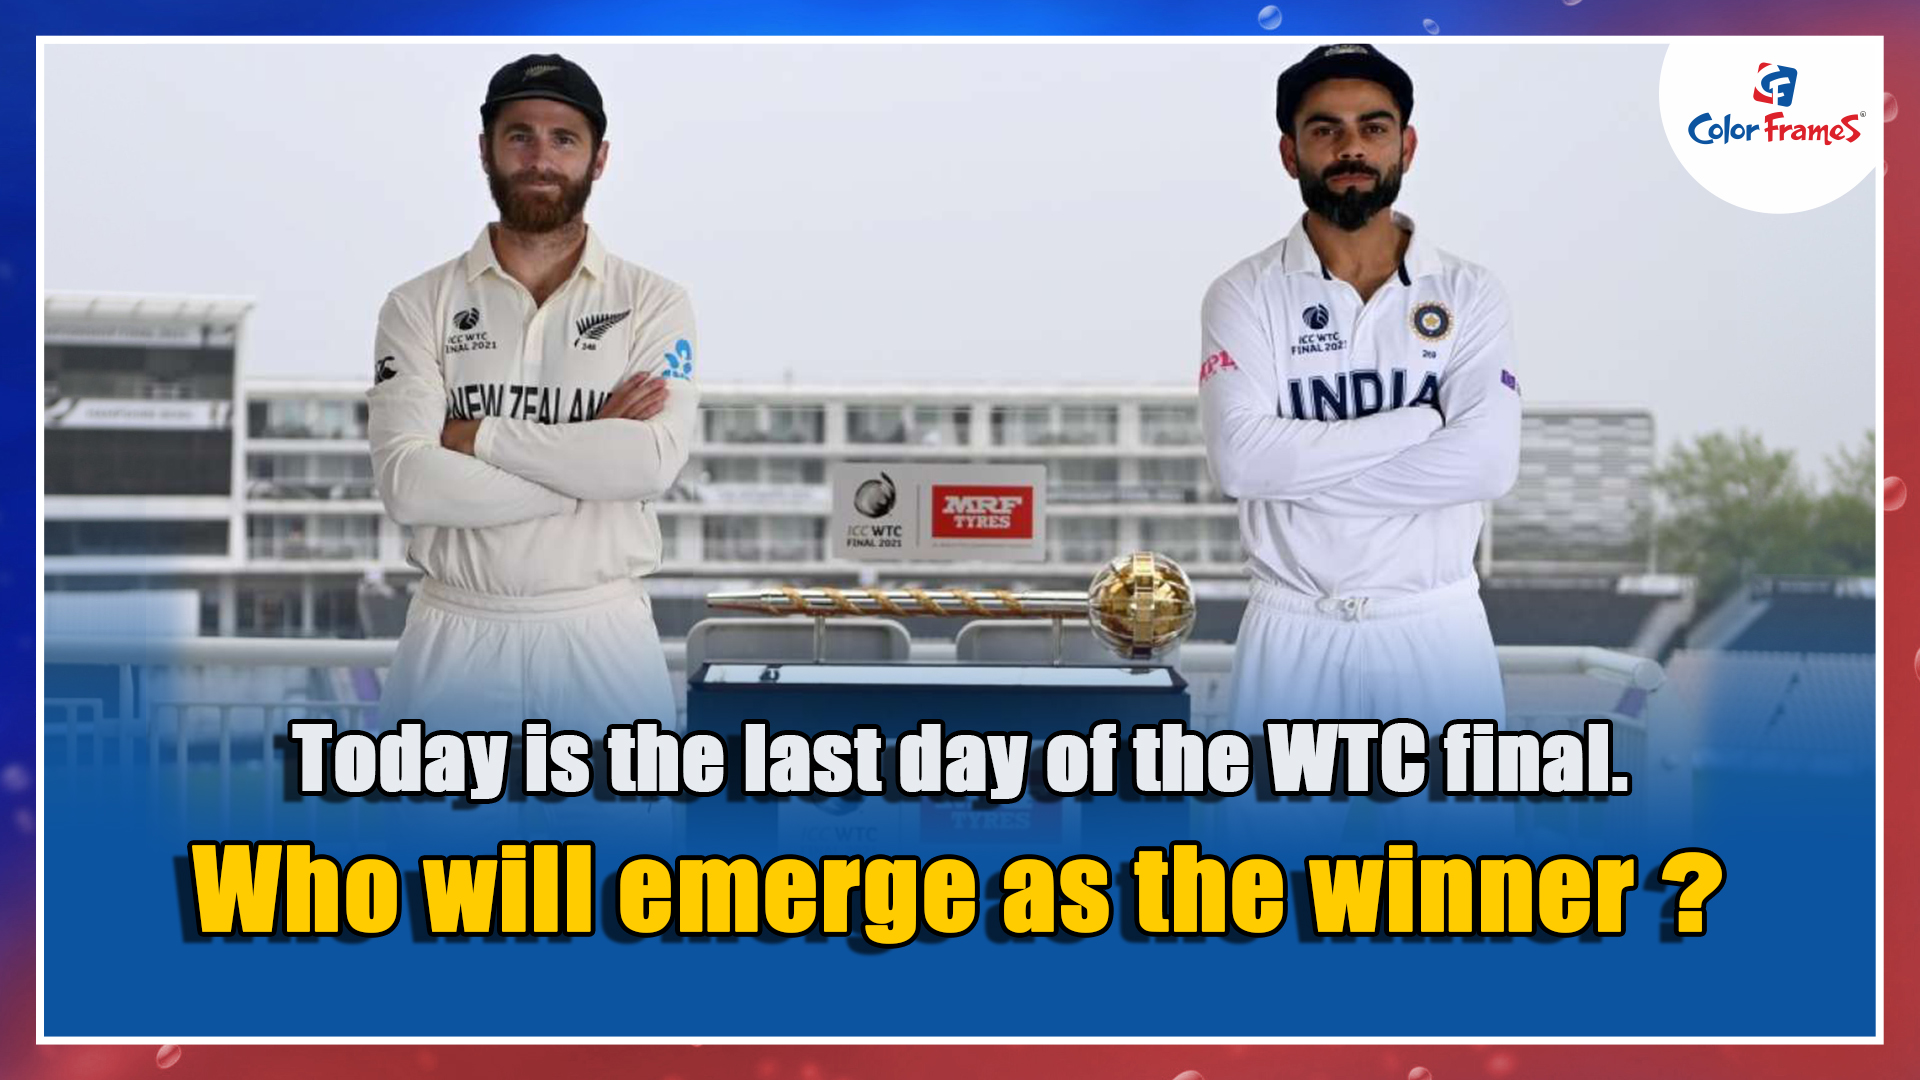 Today is the last day of the WTC final. Who will emerge as the winner?